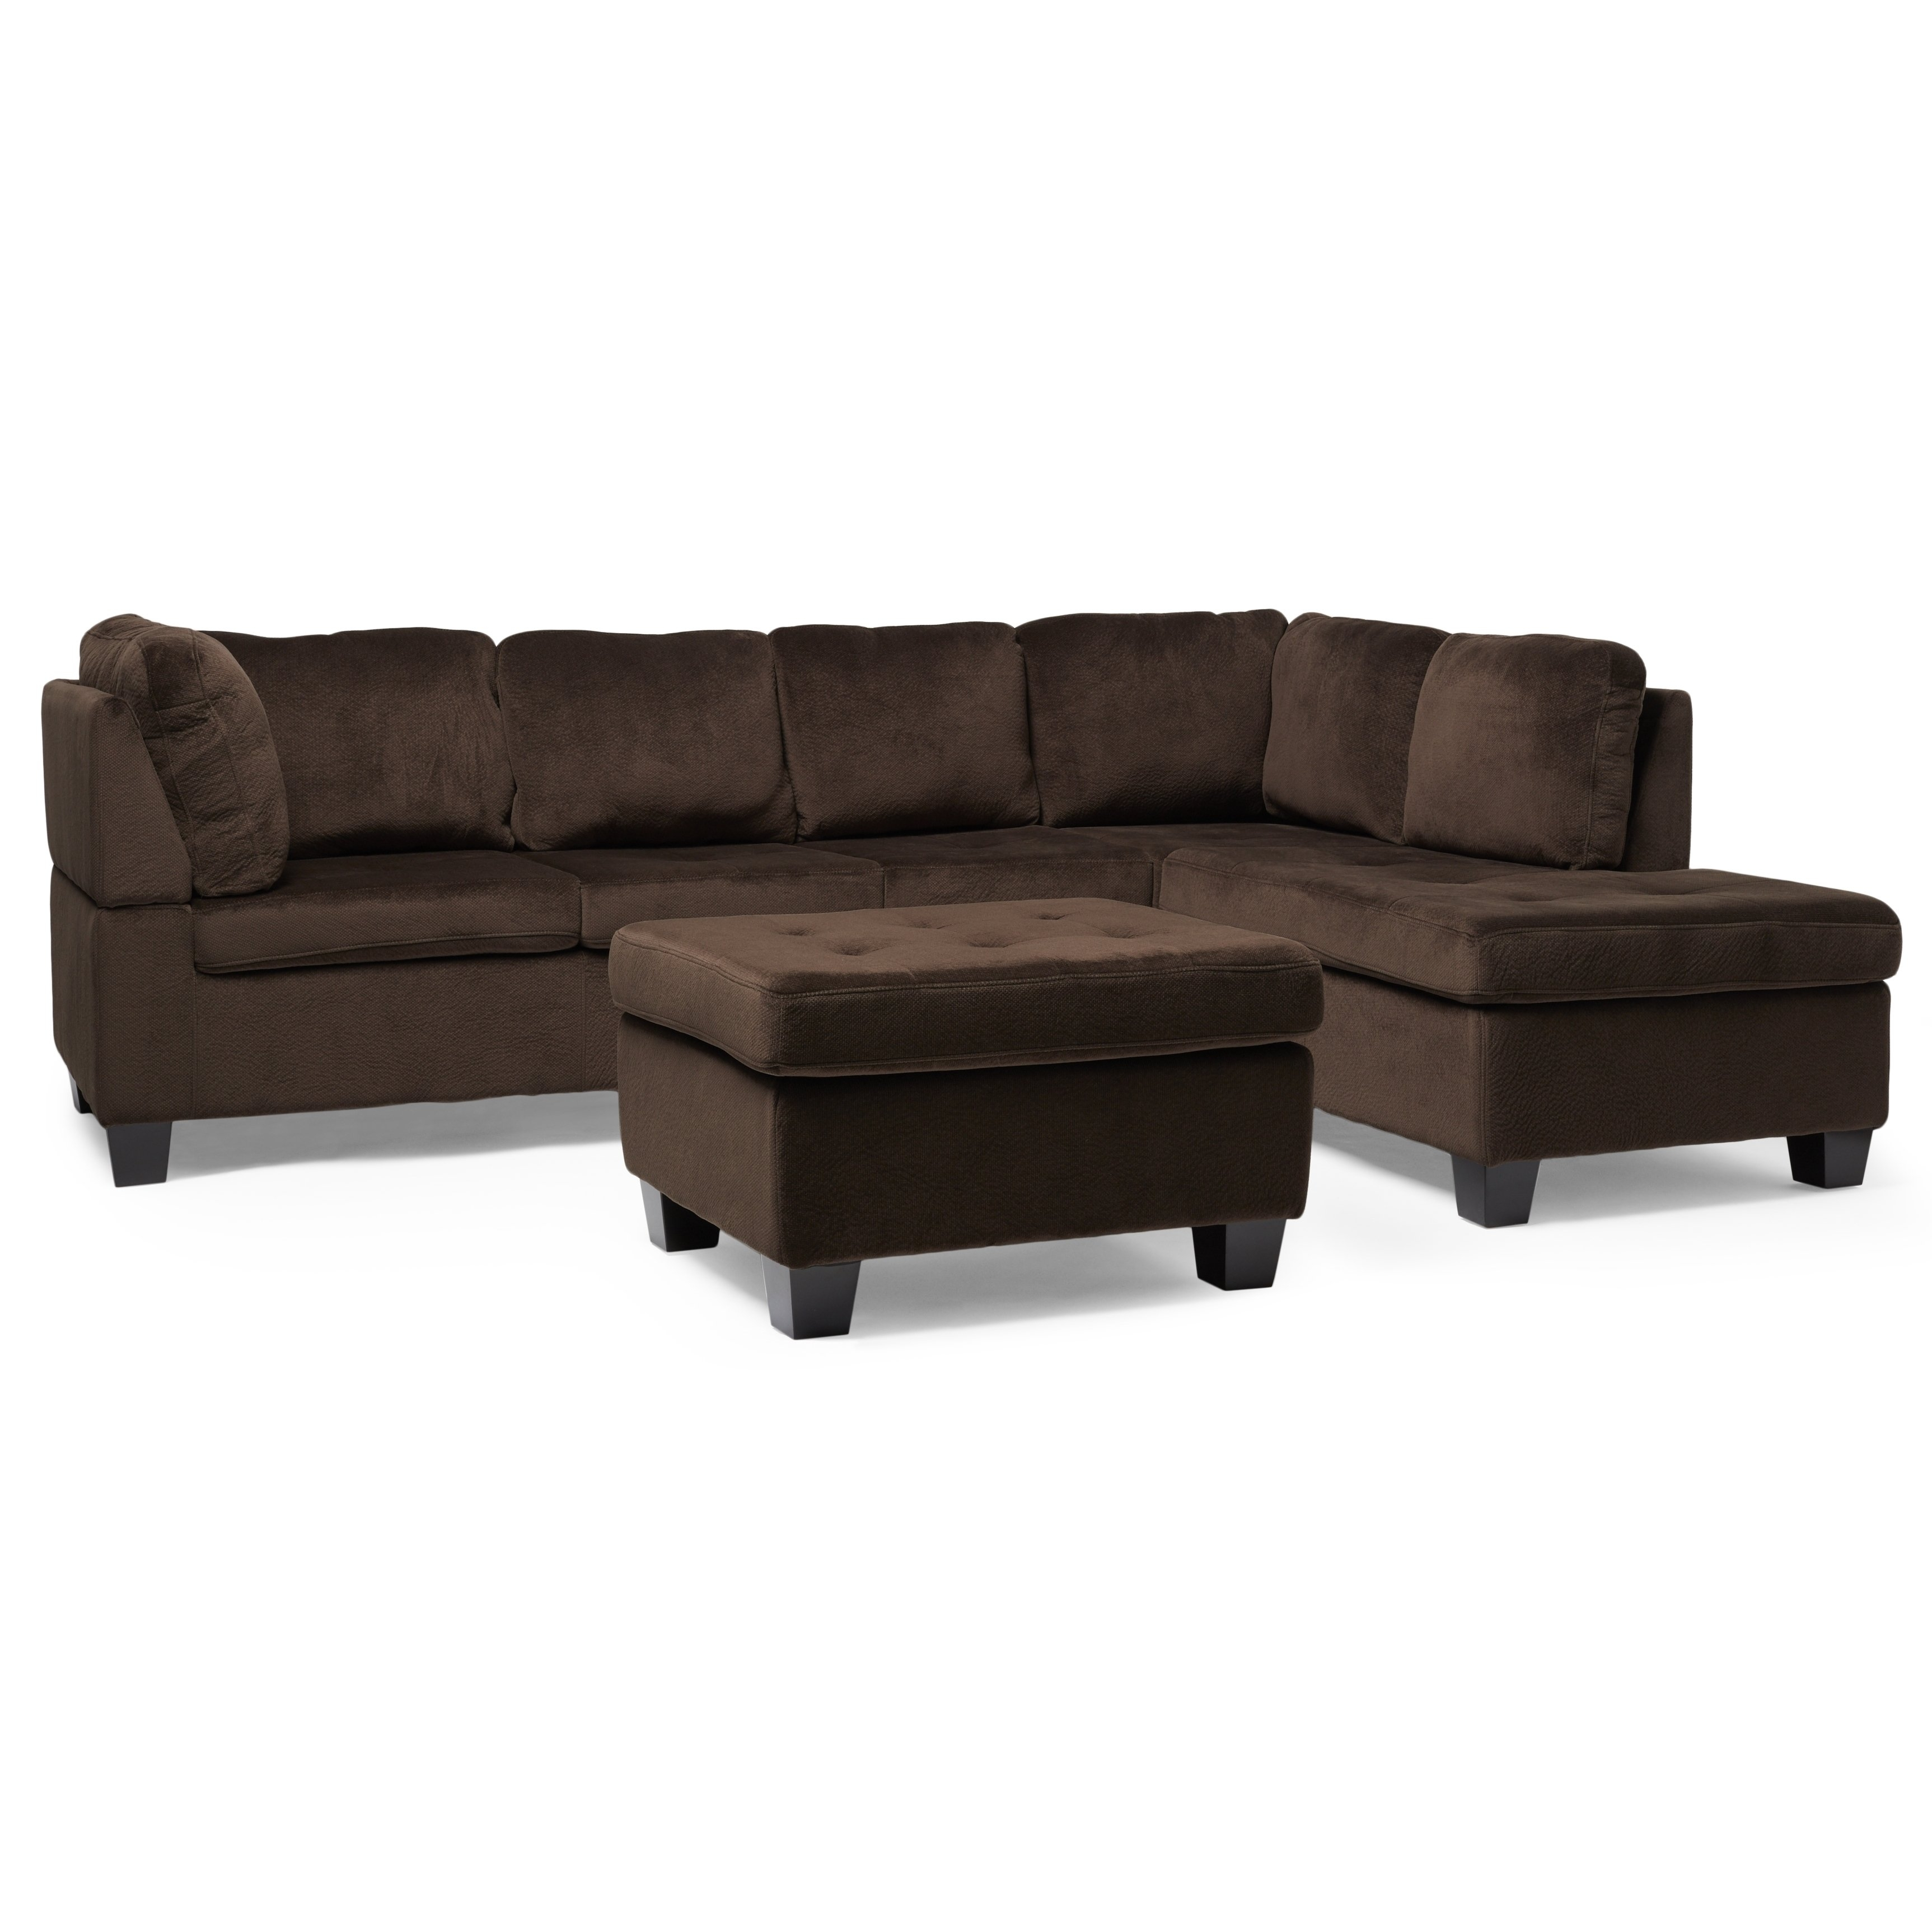 Buy Brown Sectional Sofas Online At Overstock | Our Best Living With Regard To Sierra Down 3 Piece Sectionals With Laf Chaise (View 7 of 30)